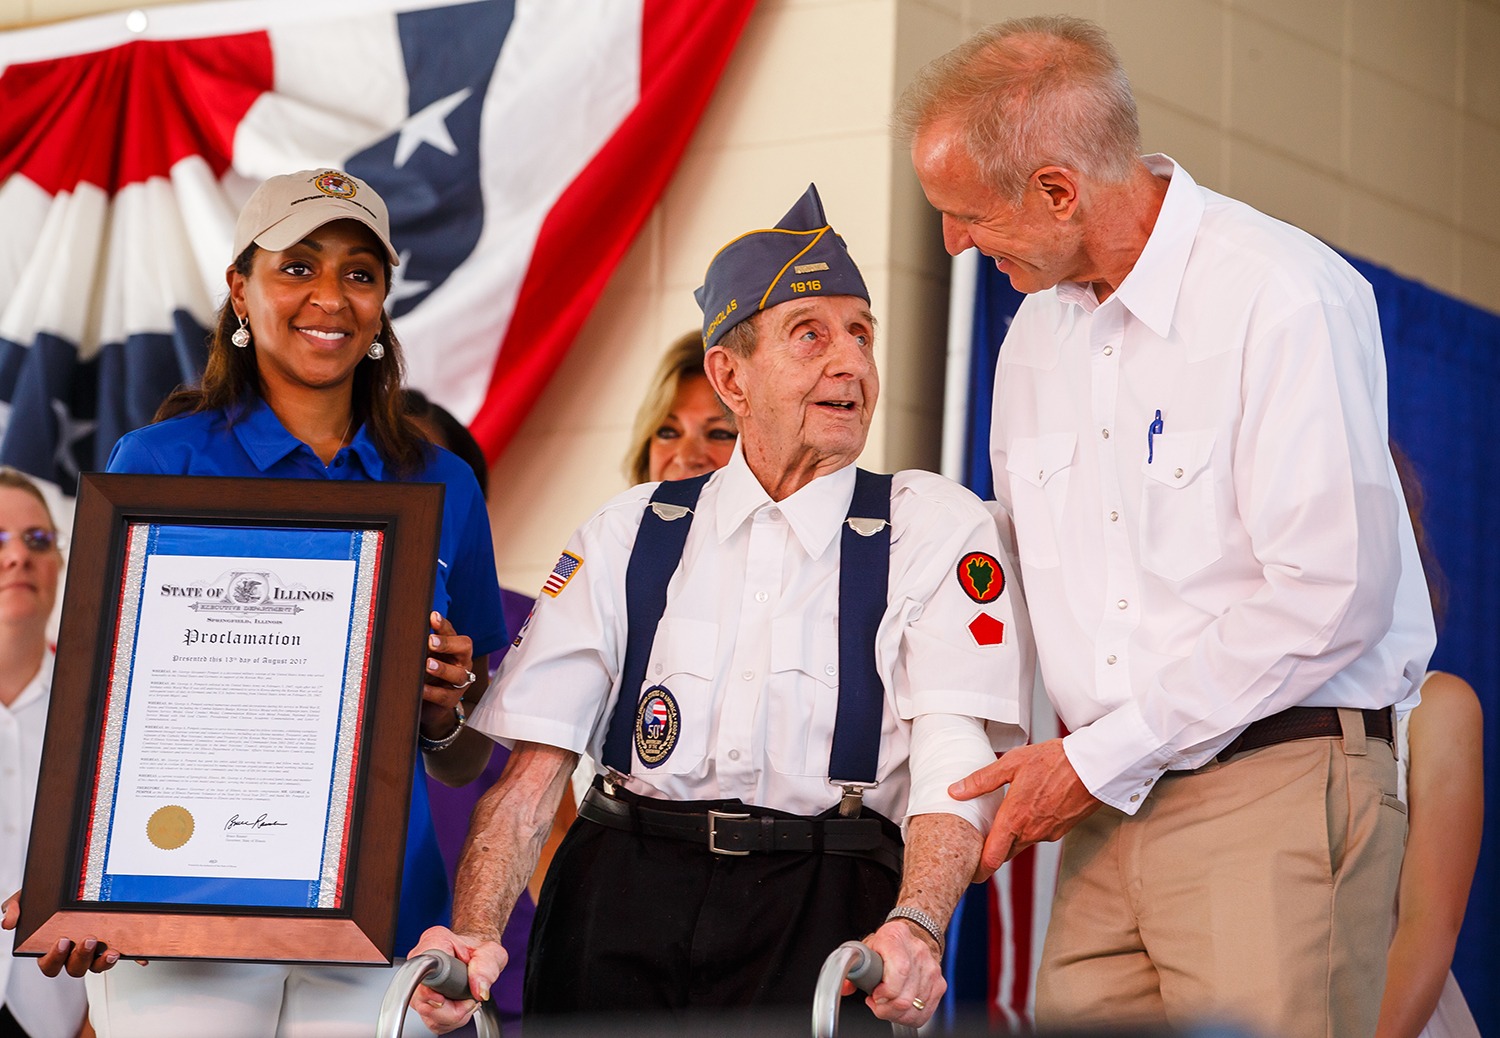 George Pempek, a U.S. Army Veteran of WWII, the Korean War and the Vietnam War, is honored with the Illinois Veterans' Patriotic Volunteer of the Year award Aug. 13 by Gov. Bruce Rauner and Illinois Dept. of Vetarans' Affairs director Erica Jeffries during the Veterans and Gold Star Family Day event at the Illinois State Fair. Justin L. Fowler/The State Journal-Register